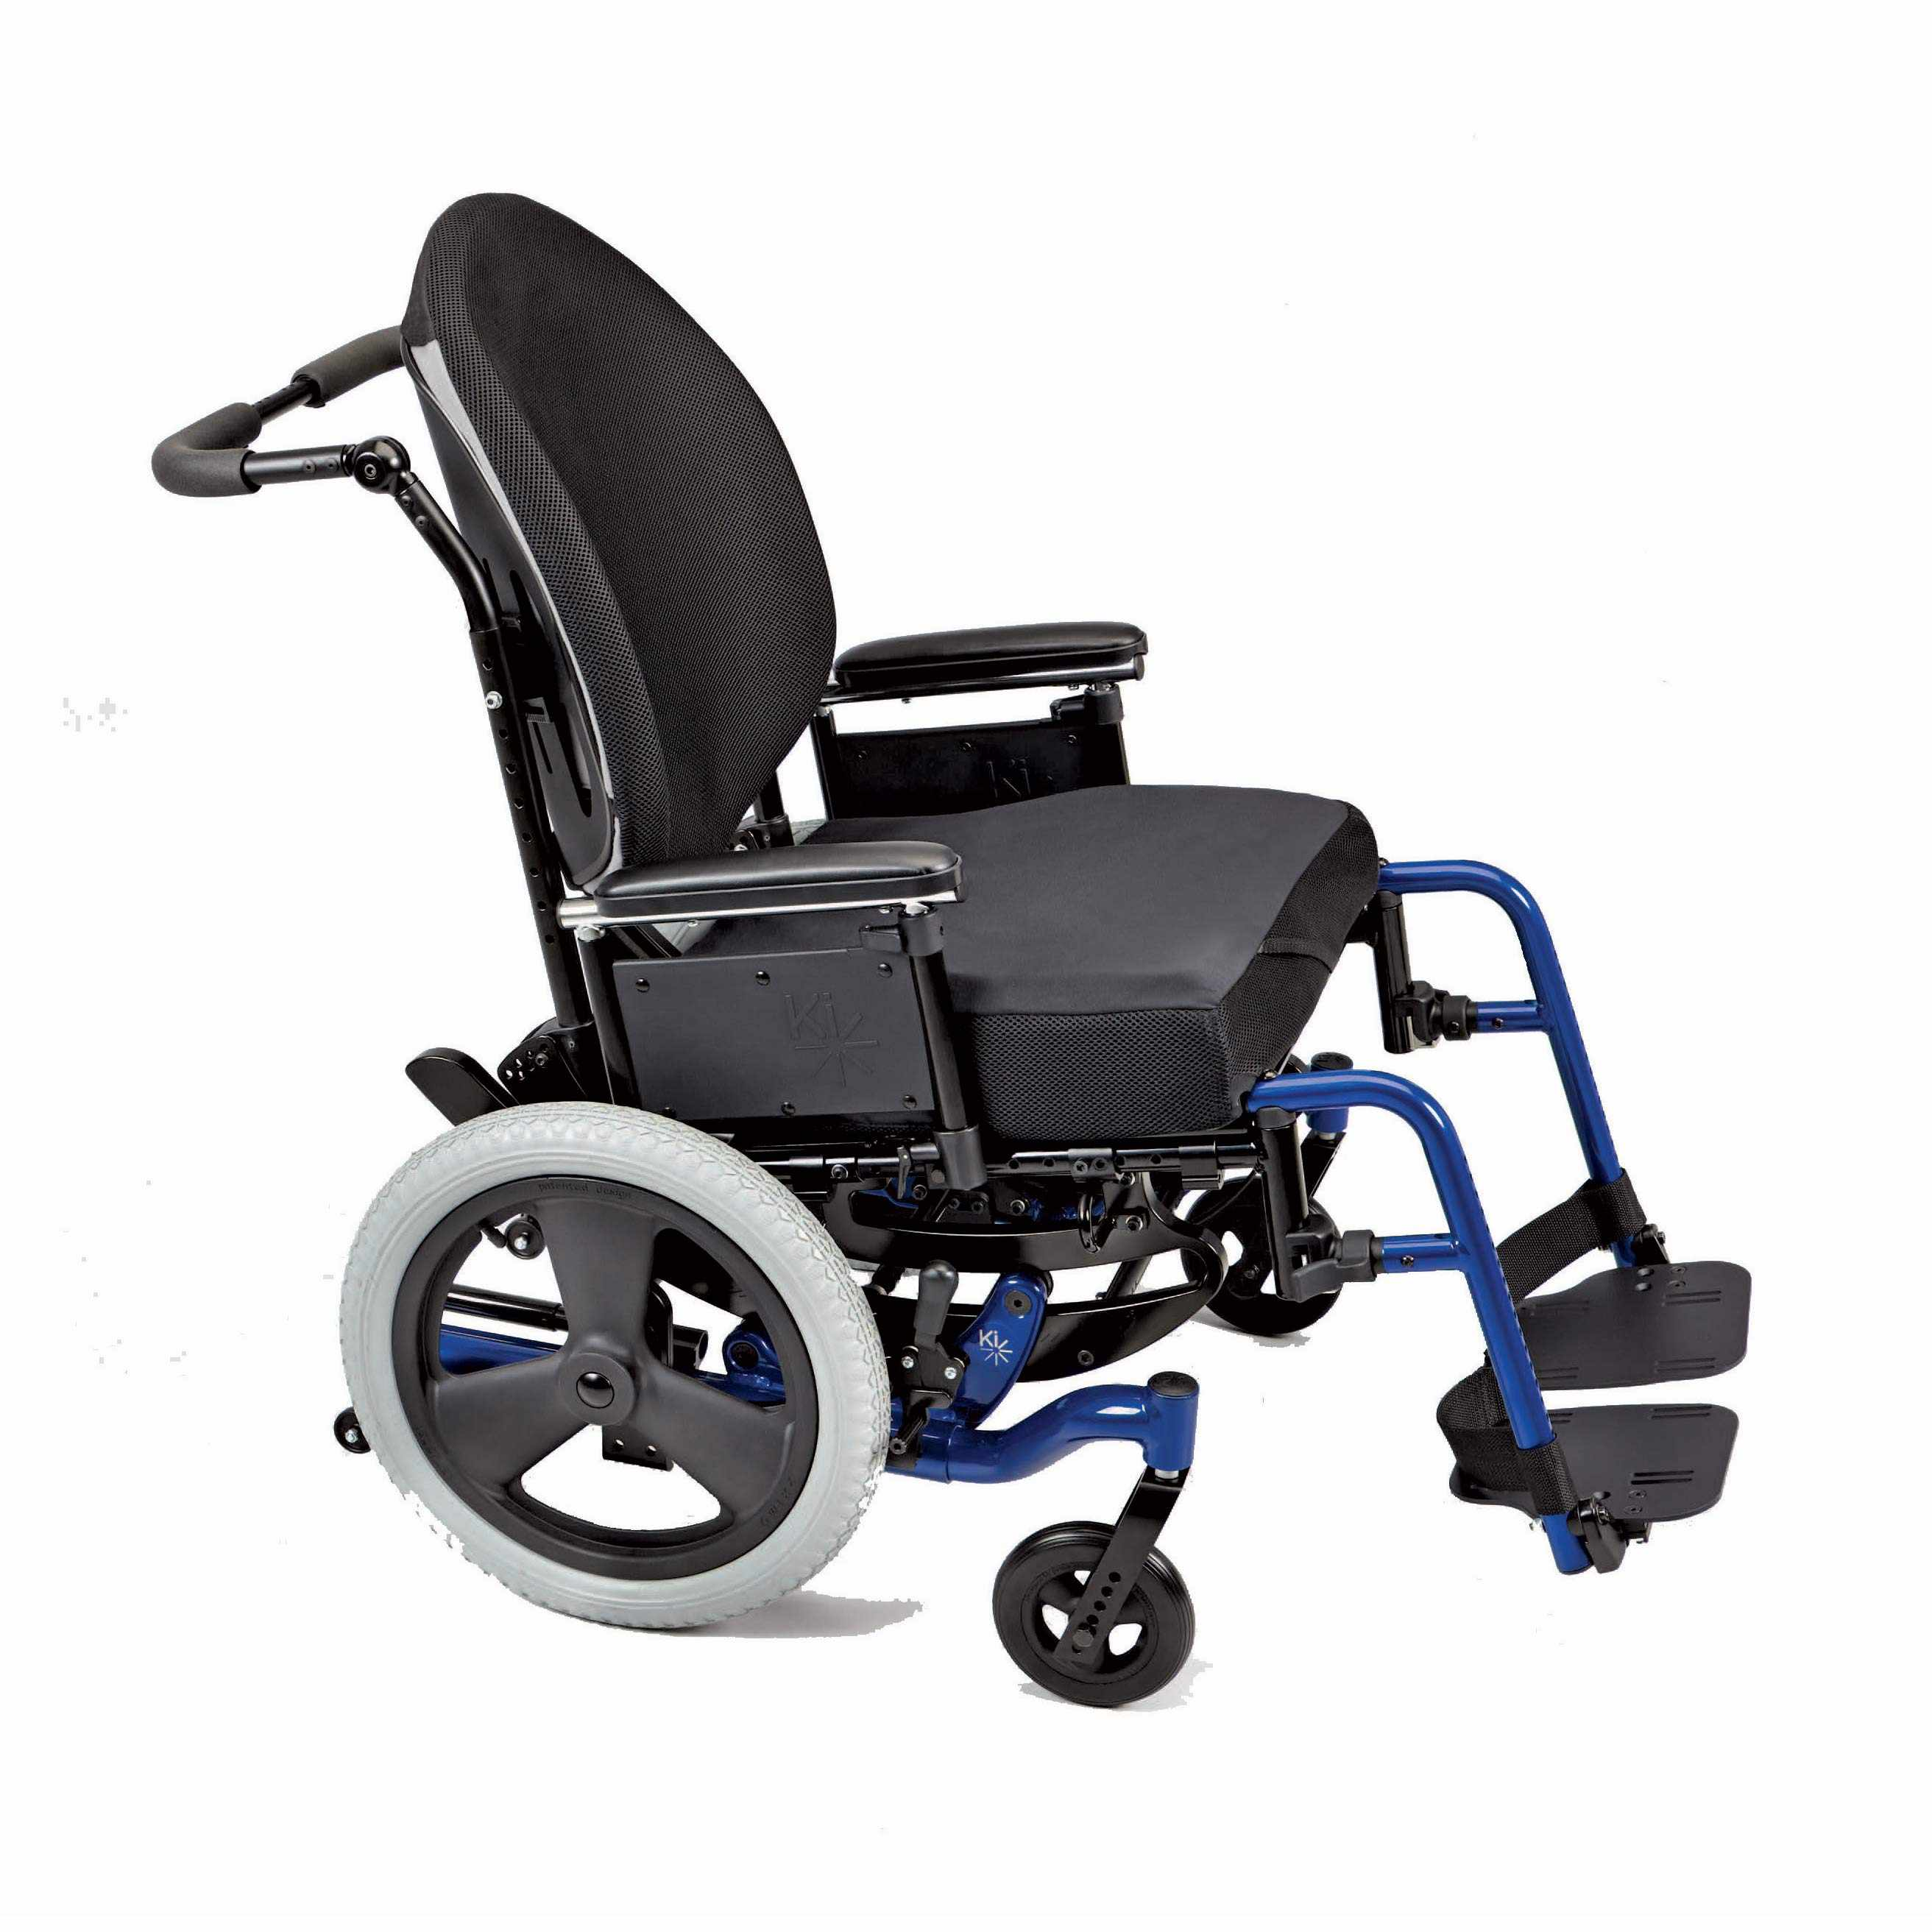 Ki Mobility Focus CR tilt manual wheelchair